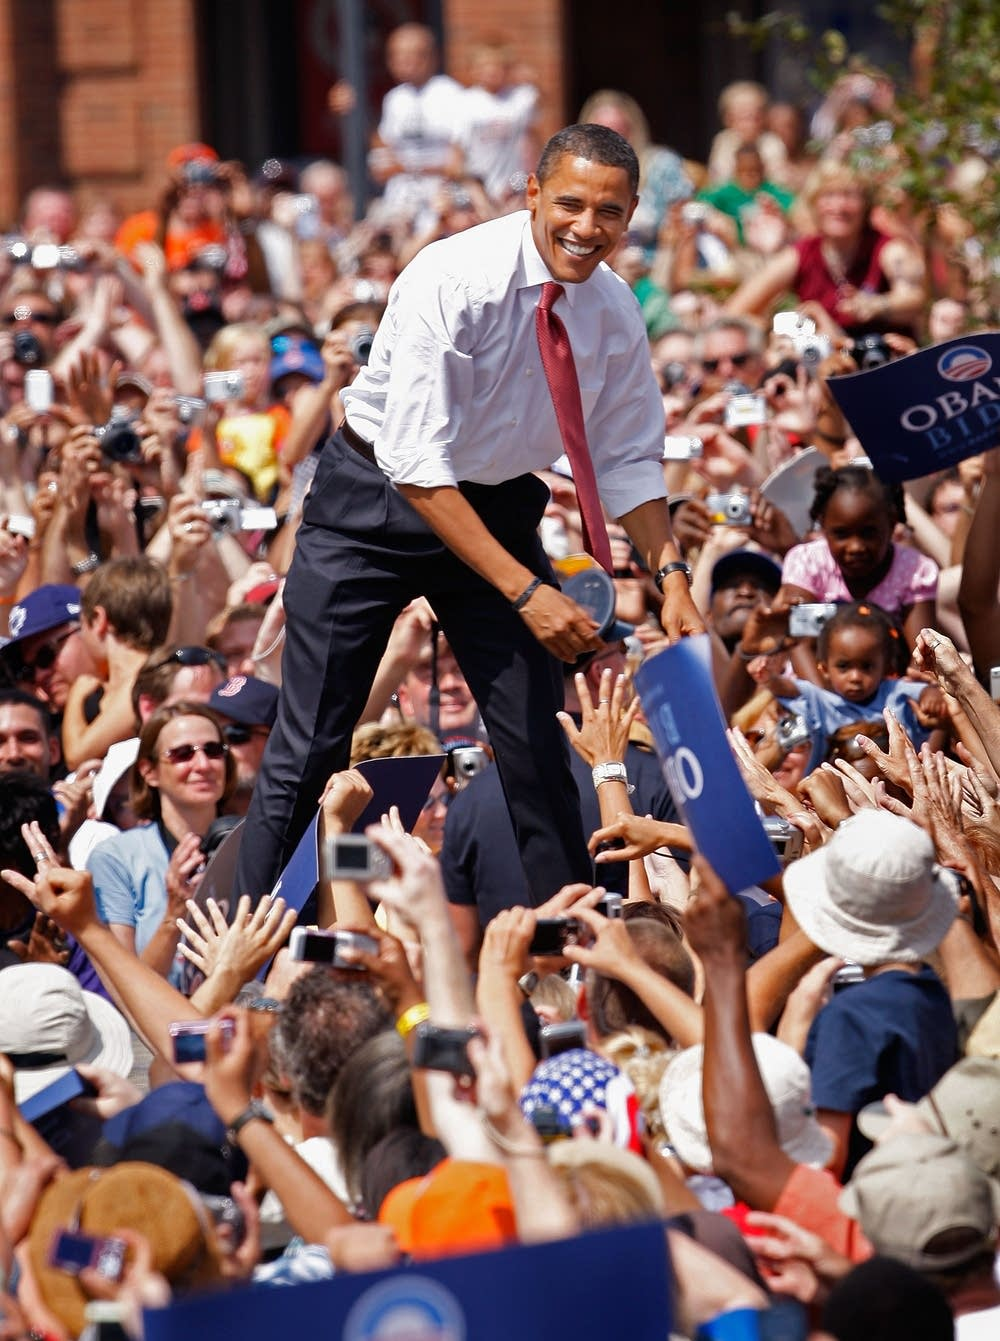 Obama greets supporters